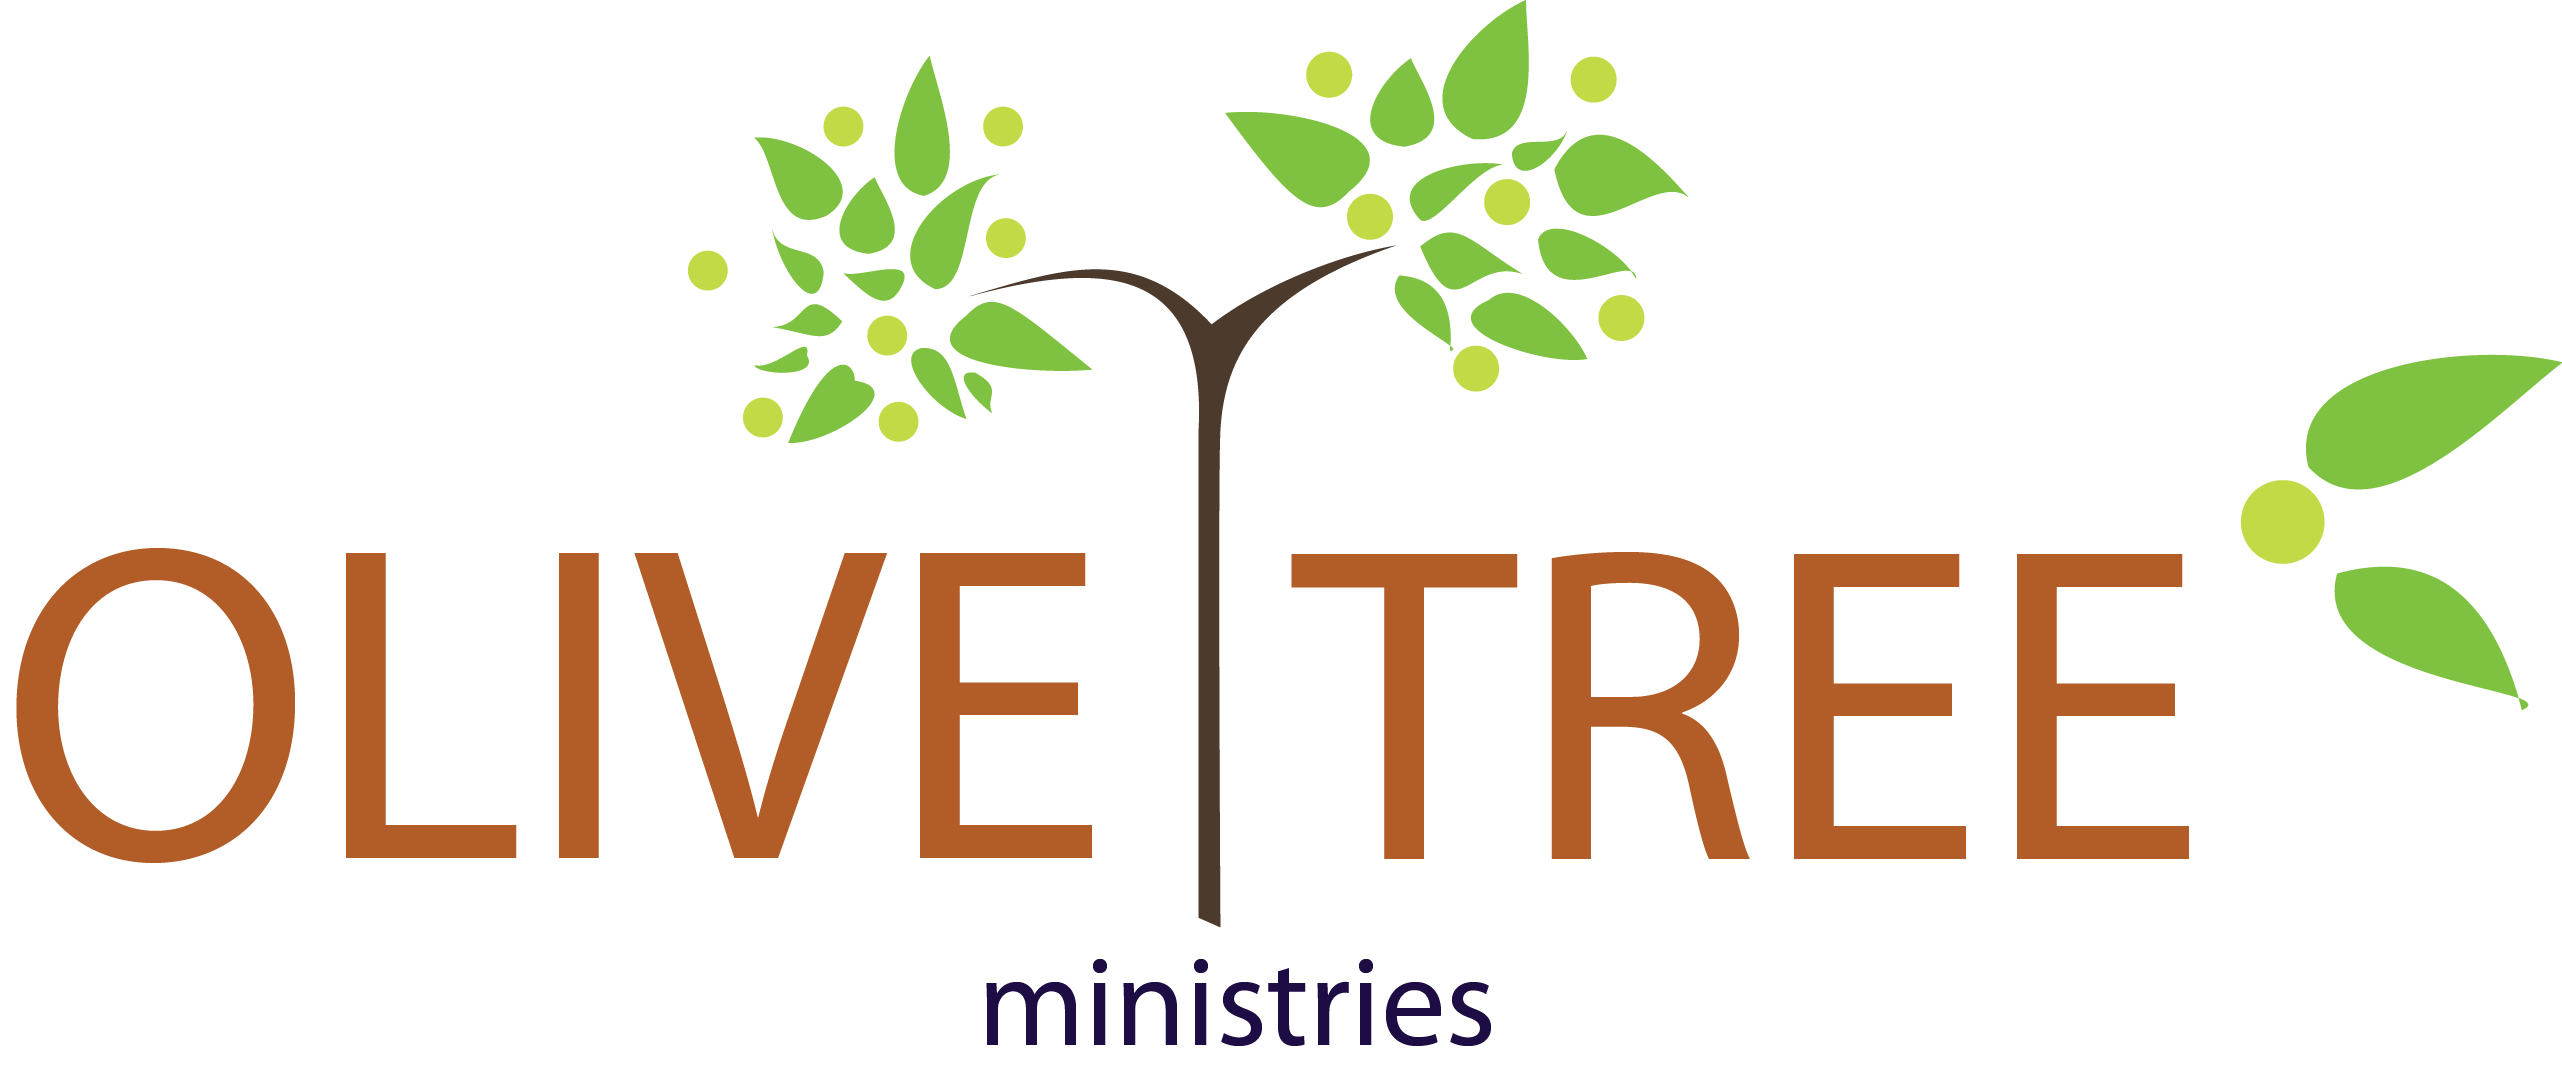 Welcome to ministries logo. Leaf clipart olive tree